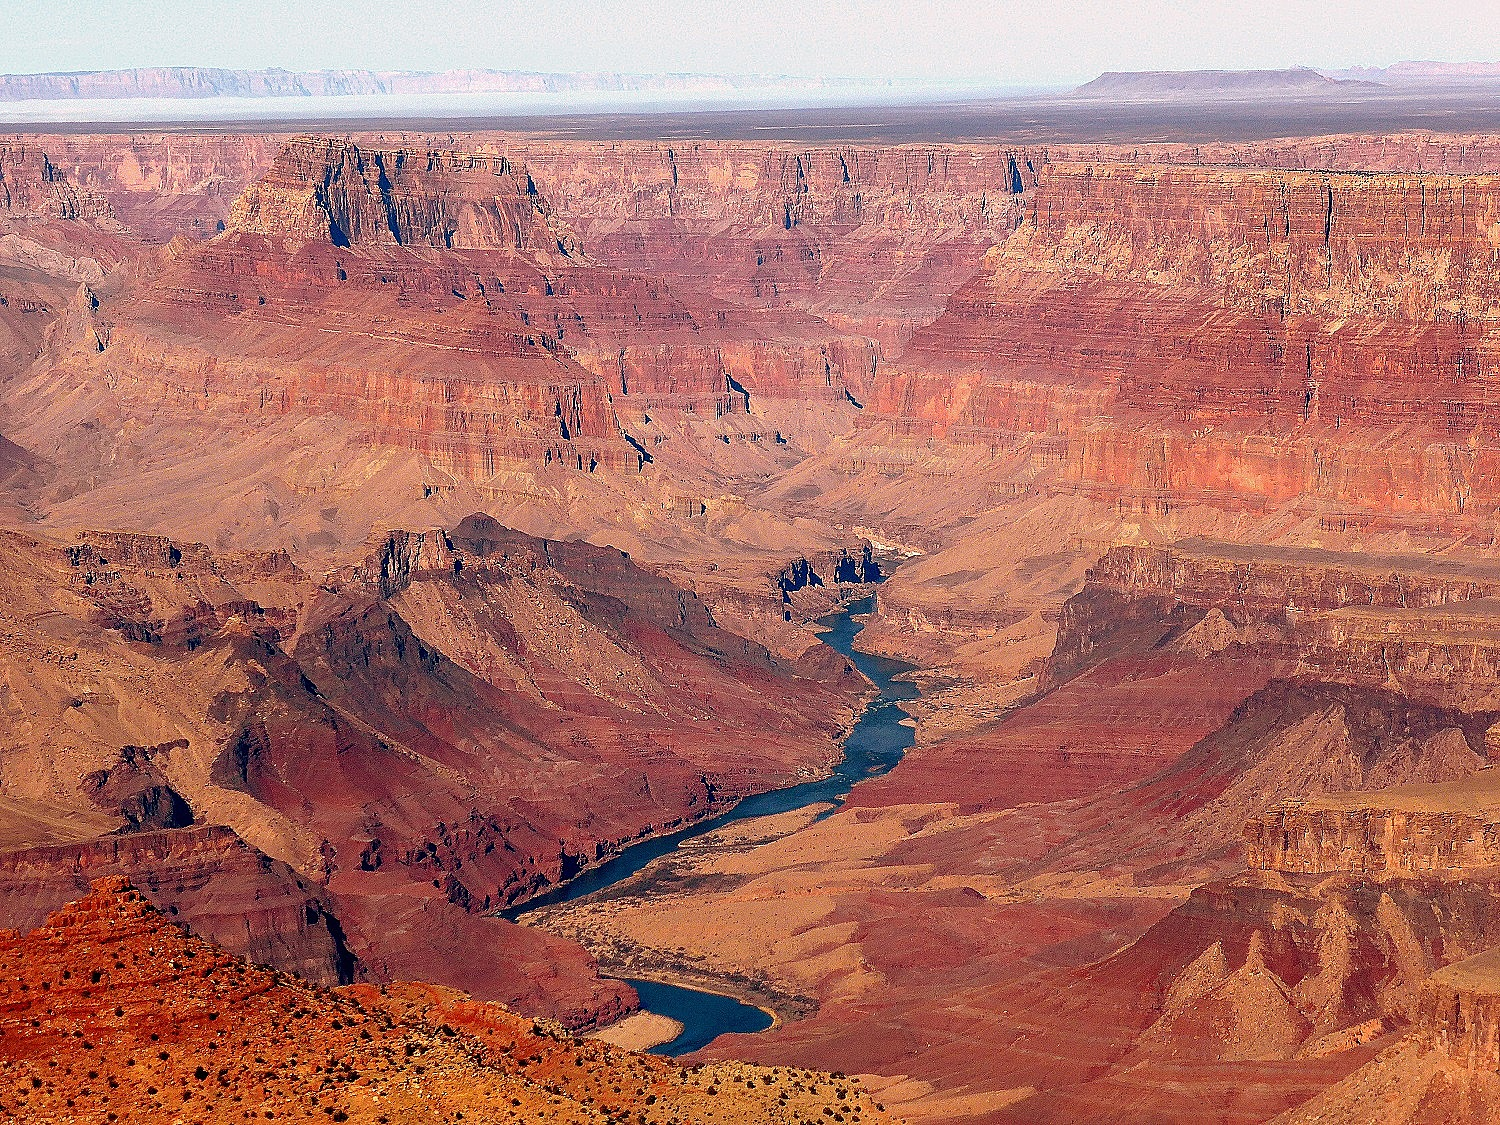 Grand Canyon . Credit: Credit: Paulina Cwik (distributed via imaggeo.egu.eu)